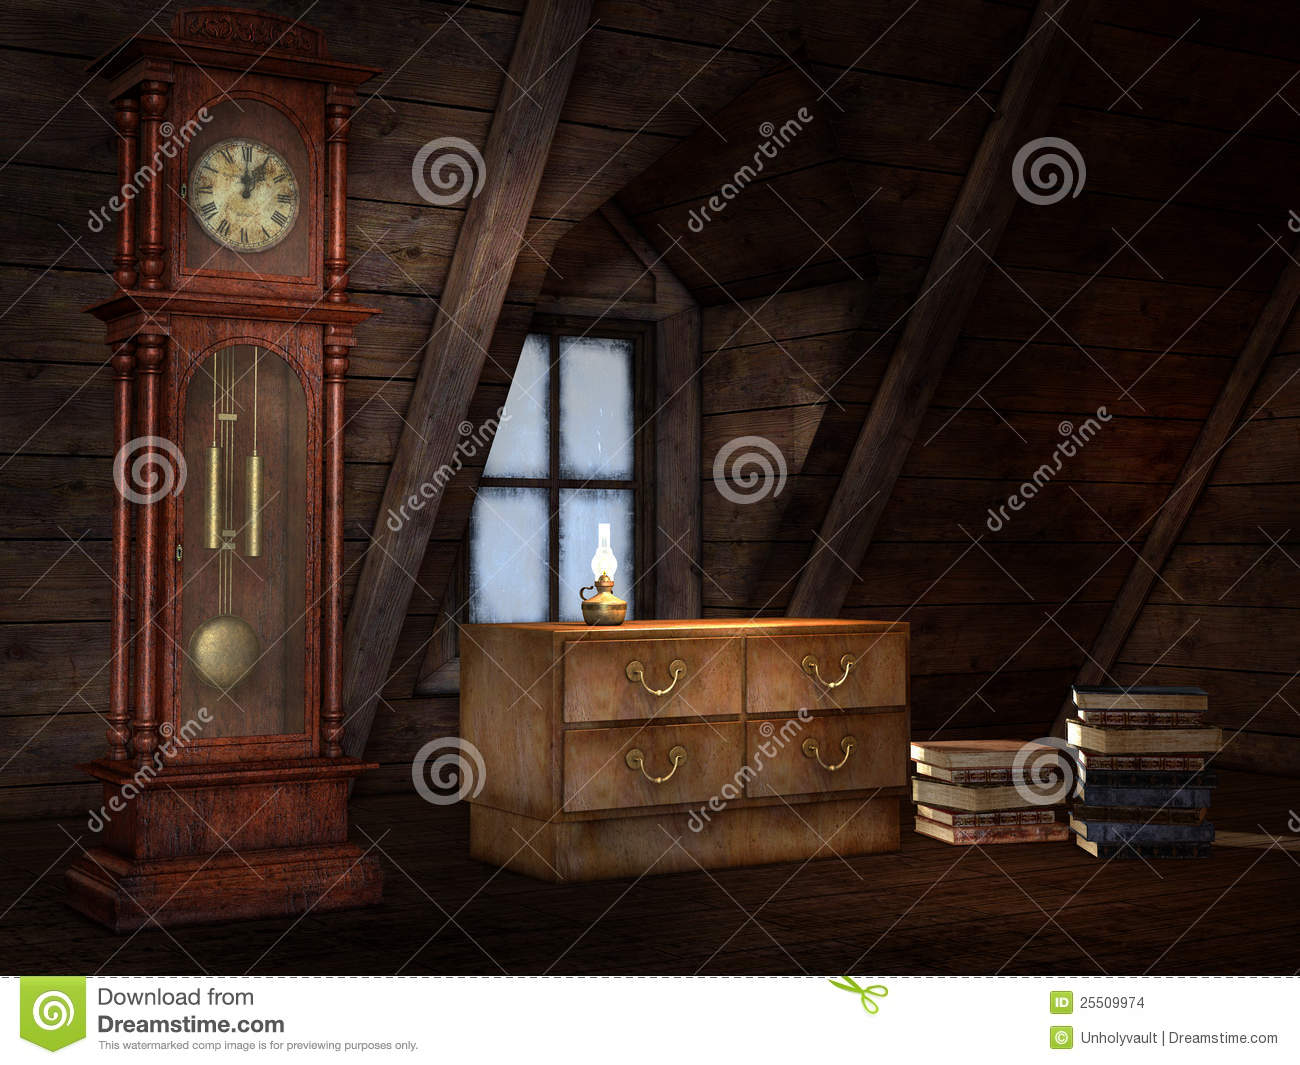 Old attic with a clock